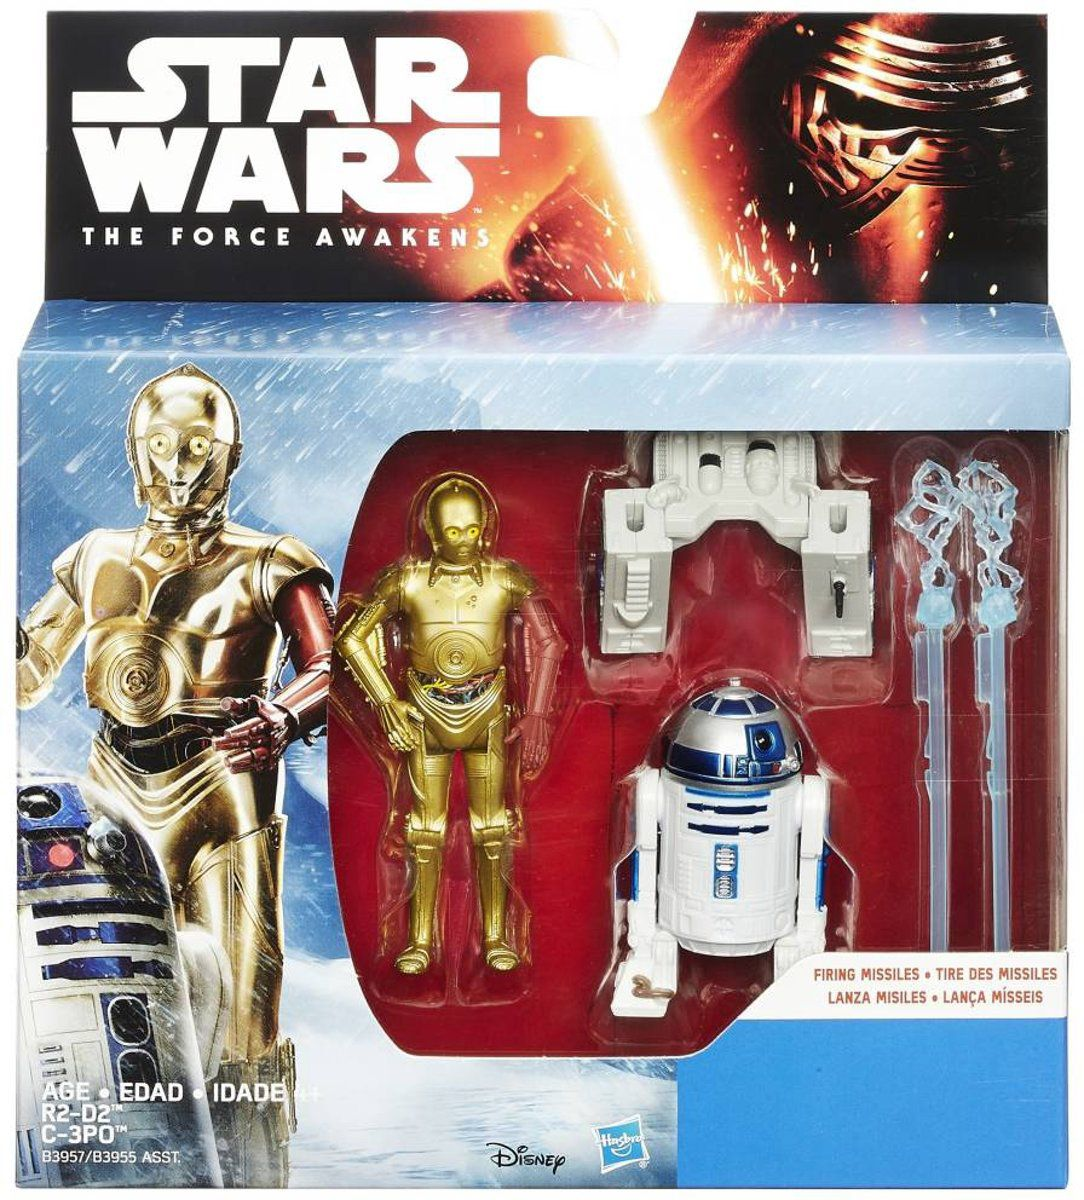 Star Wars The Force Awakens - C-3PO & R2-D2 - Hasbro B3955